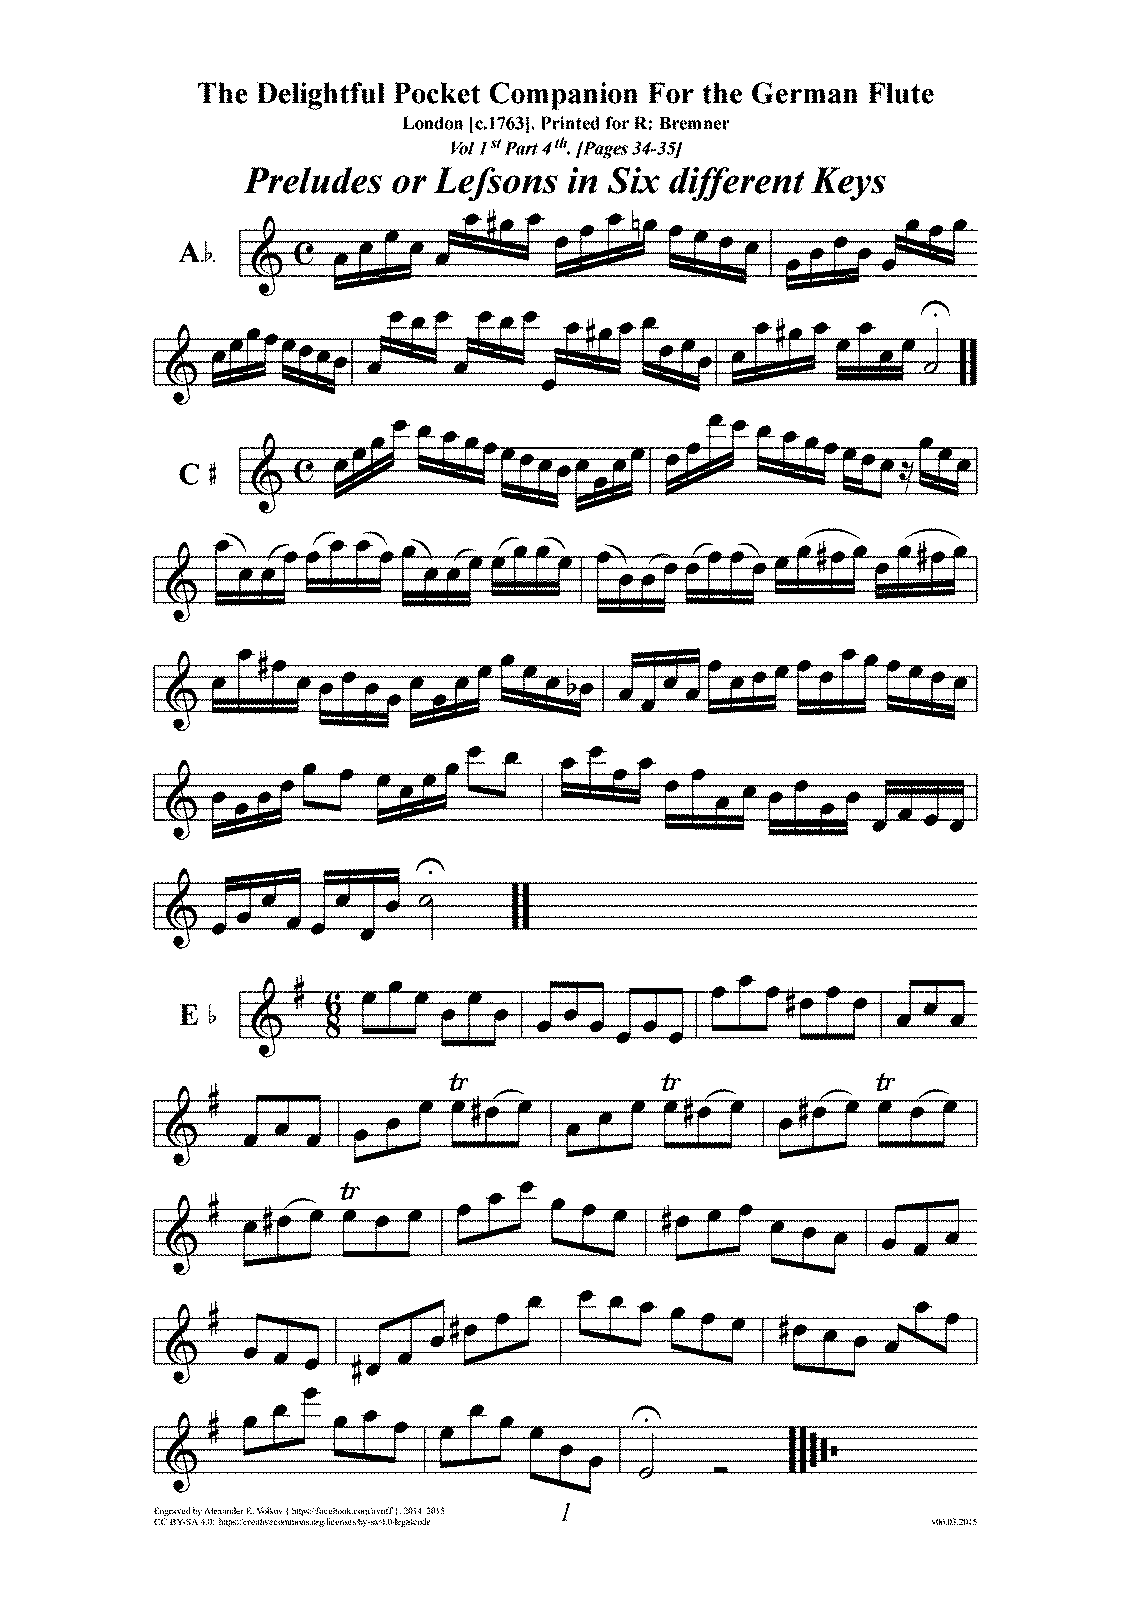 PMLP202400-The Delightful Pocket Companion for the Flute - Preludes or Lessons.pdf